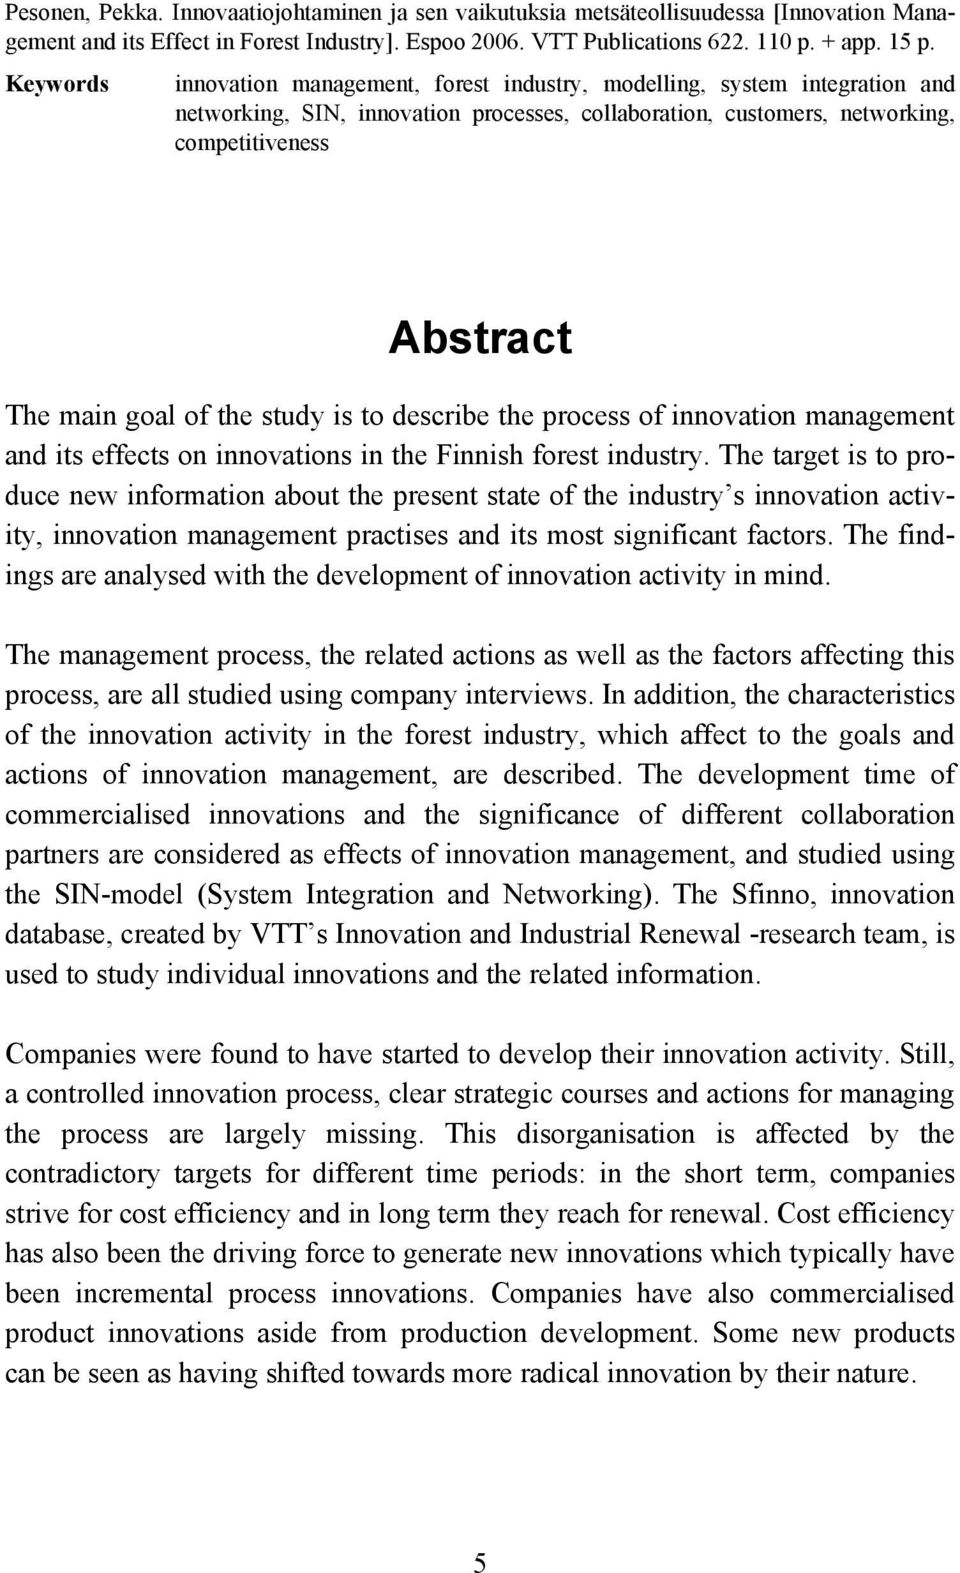 of the study is to describe the process of innovation management and its effects on innovations in the Finnish forest industry.